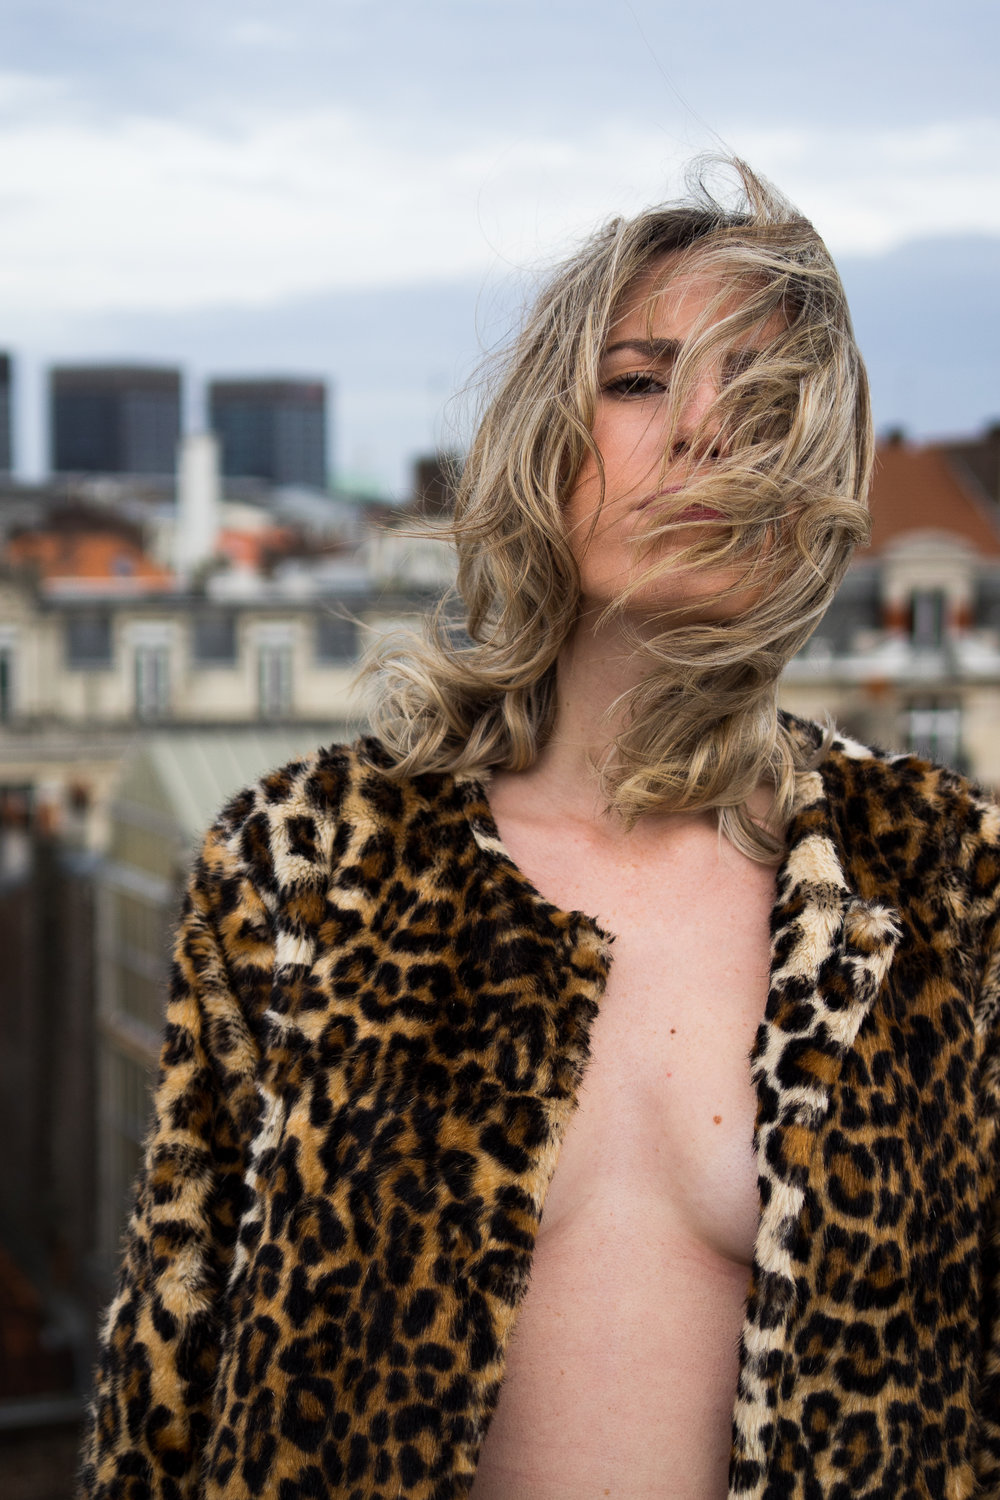 One moment with - Joséphine